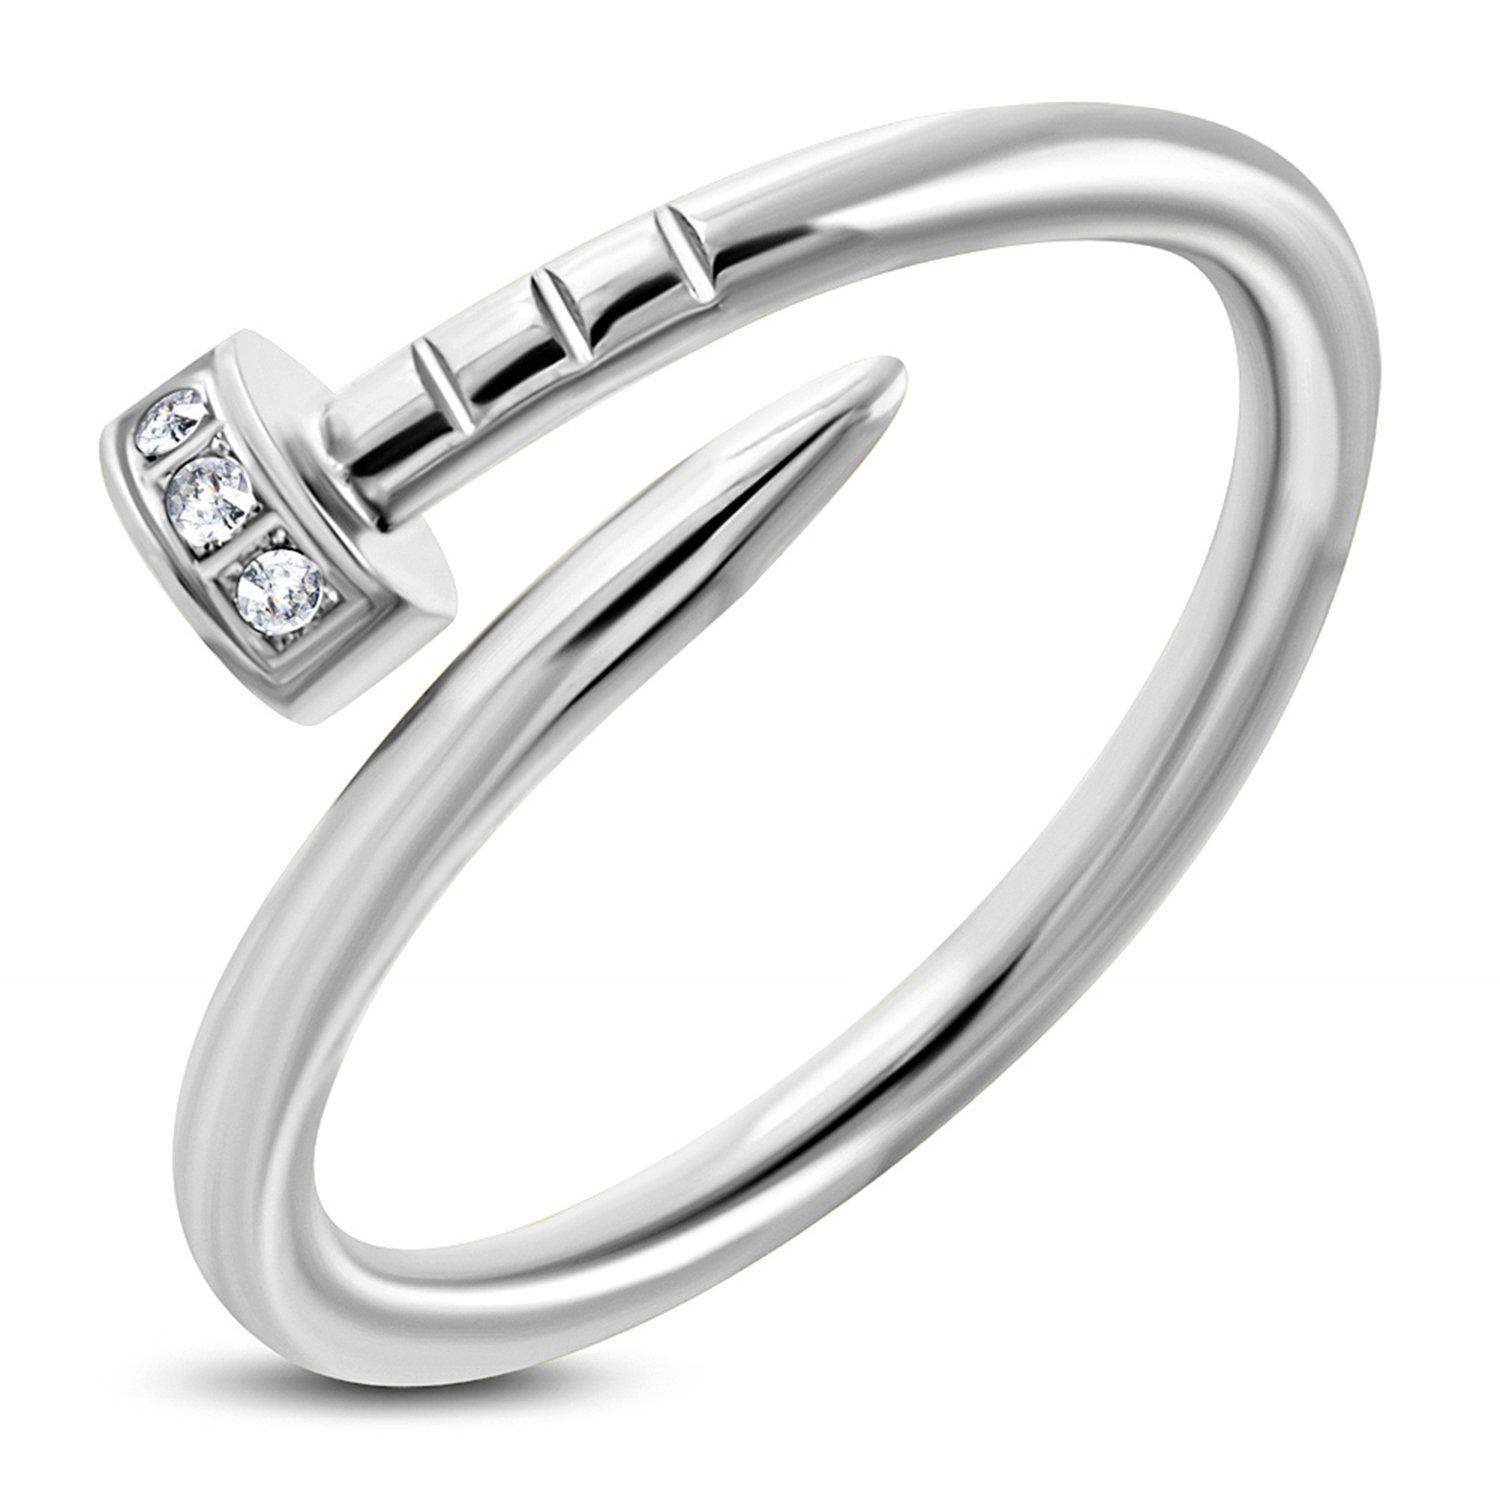 Image of Stainless Steel Cubic Zirconia Spiral Nail Screw Ring